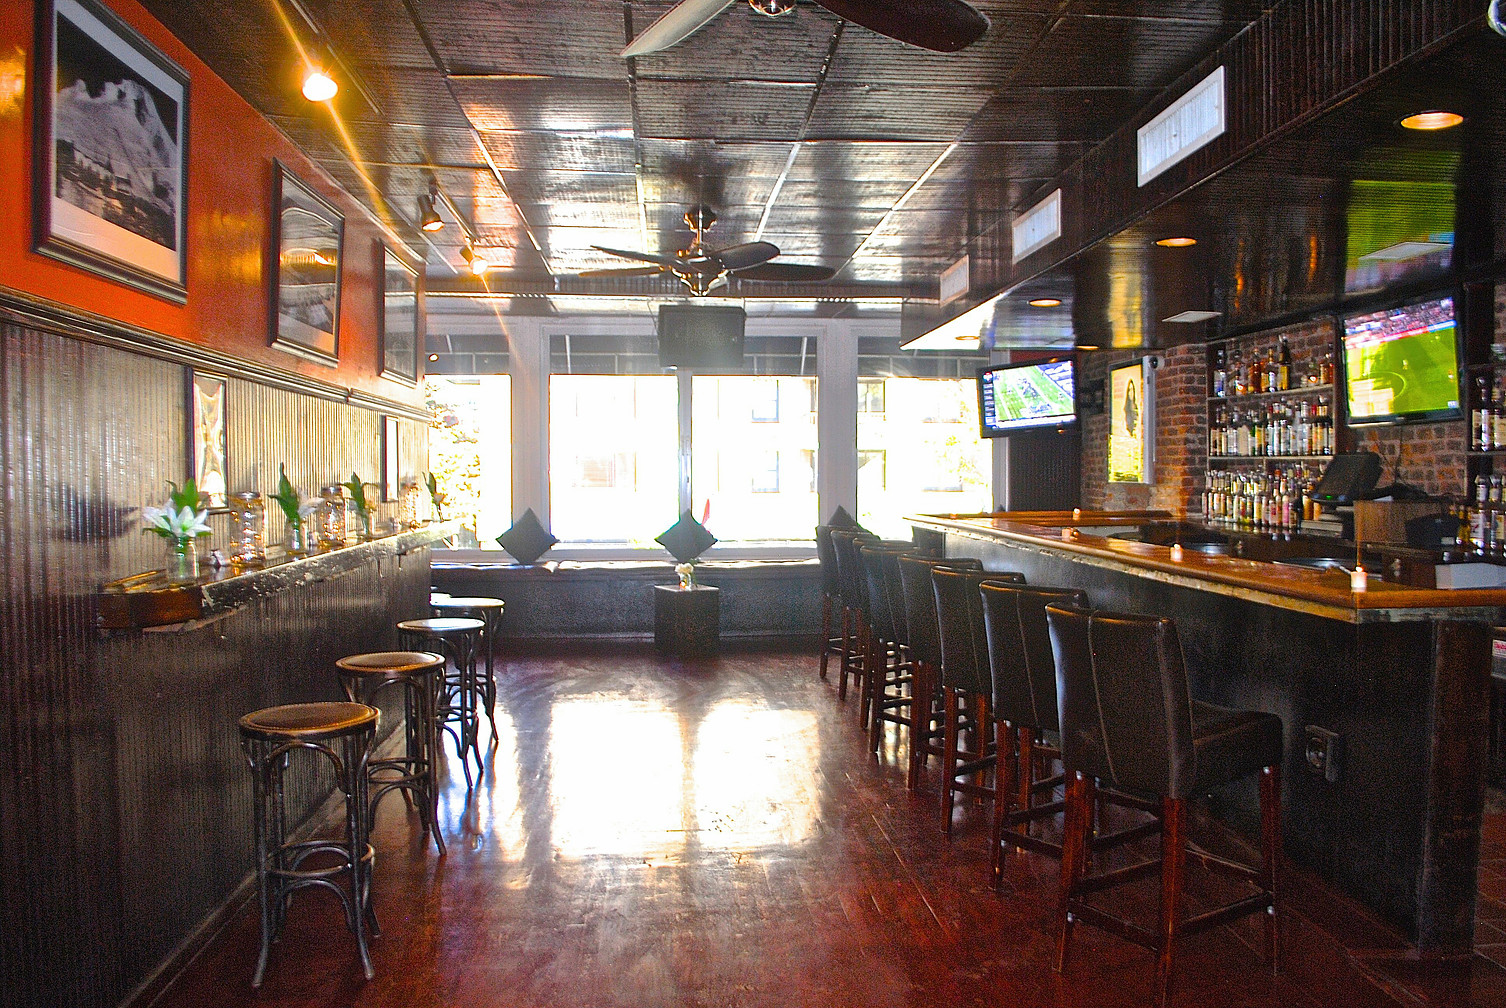 Mad River Bar and Grille event space in New York City, NYC, NY/NJ Area